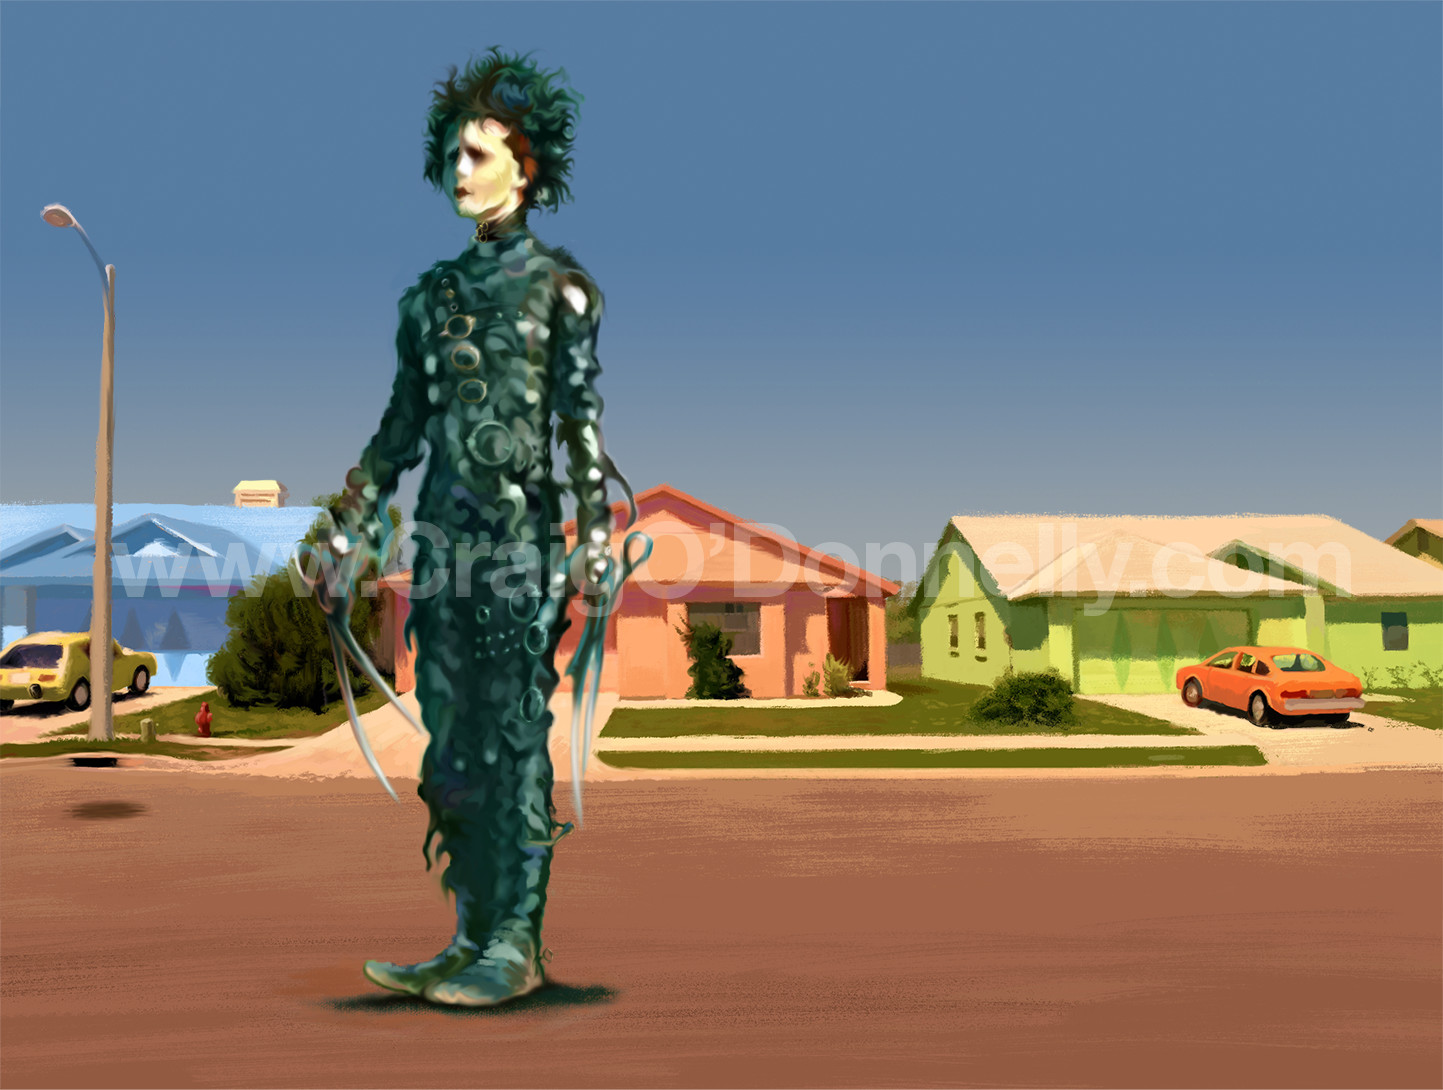 Edward Scissorhands 25th Anniversary Reel Art